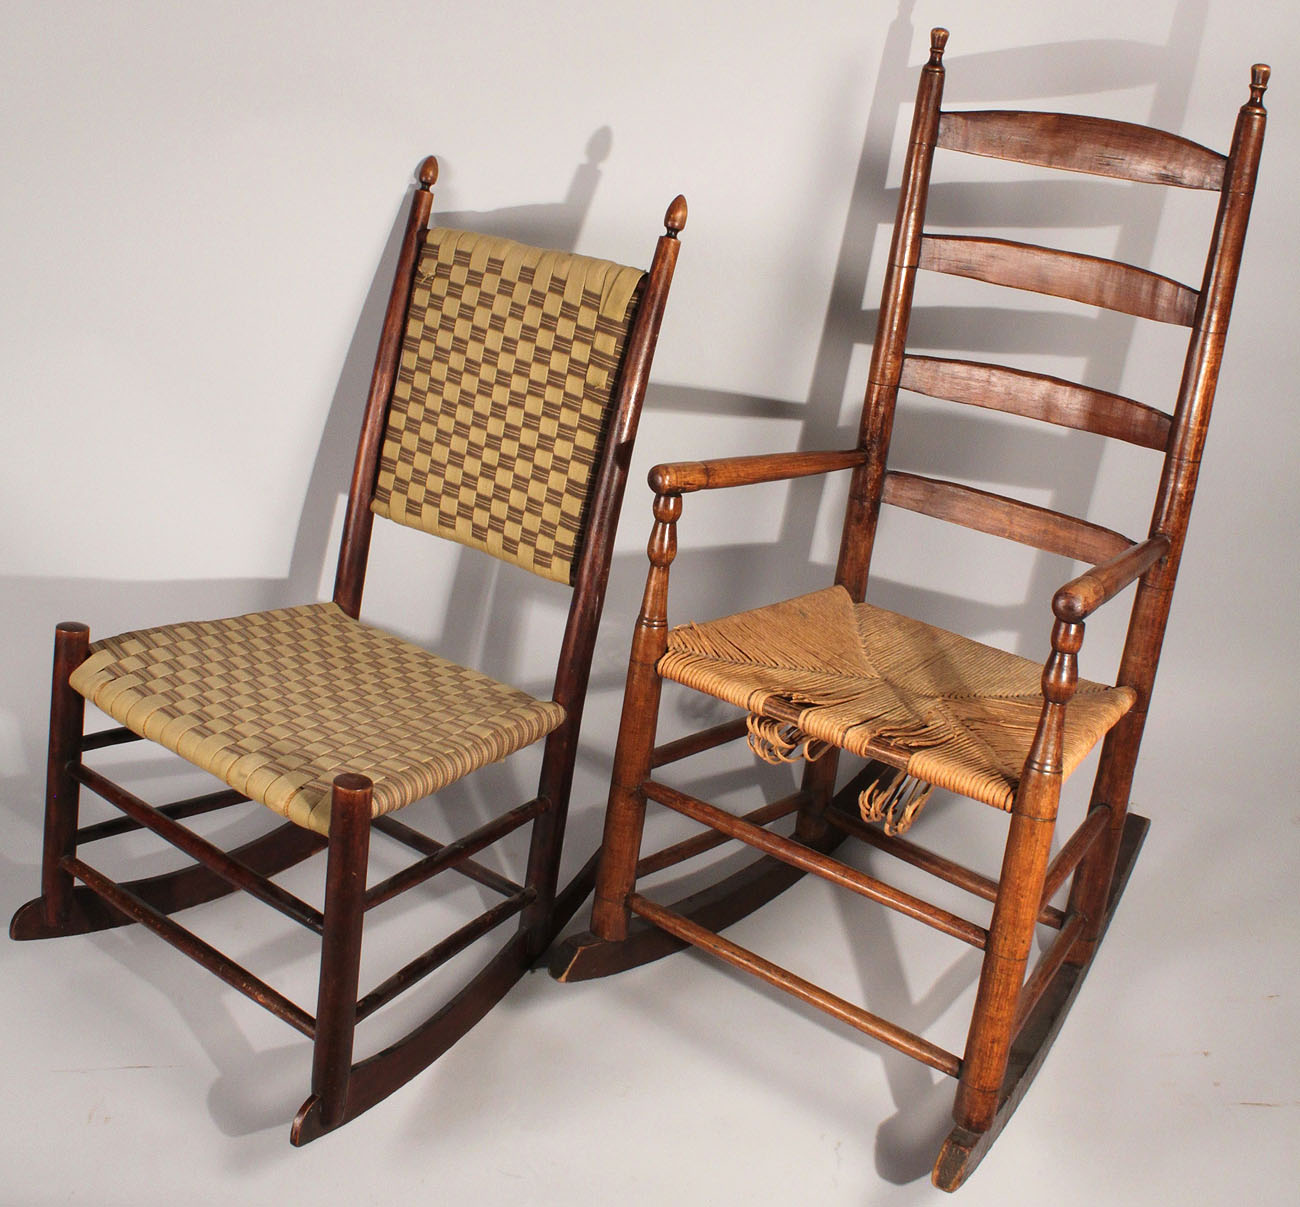 Antique shaker chairs - Antique Shaker Chairs 5